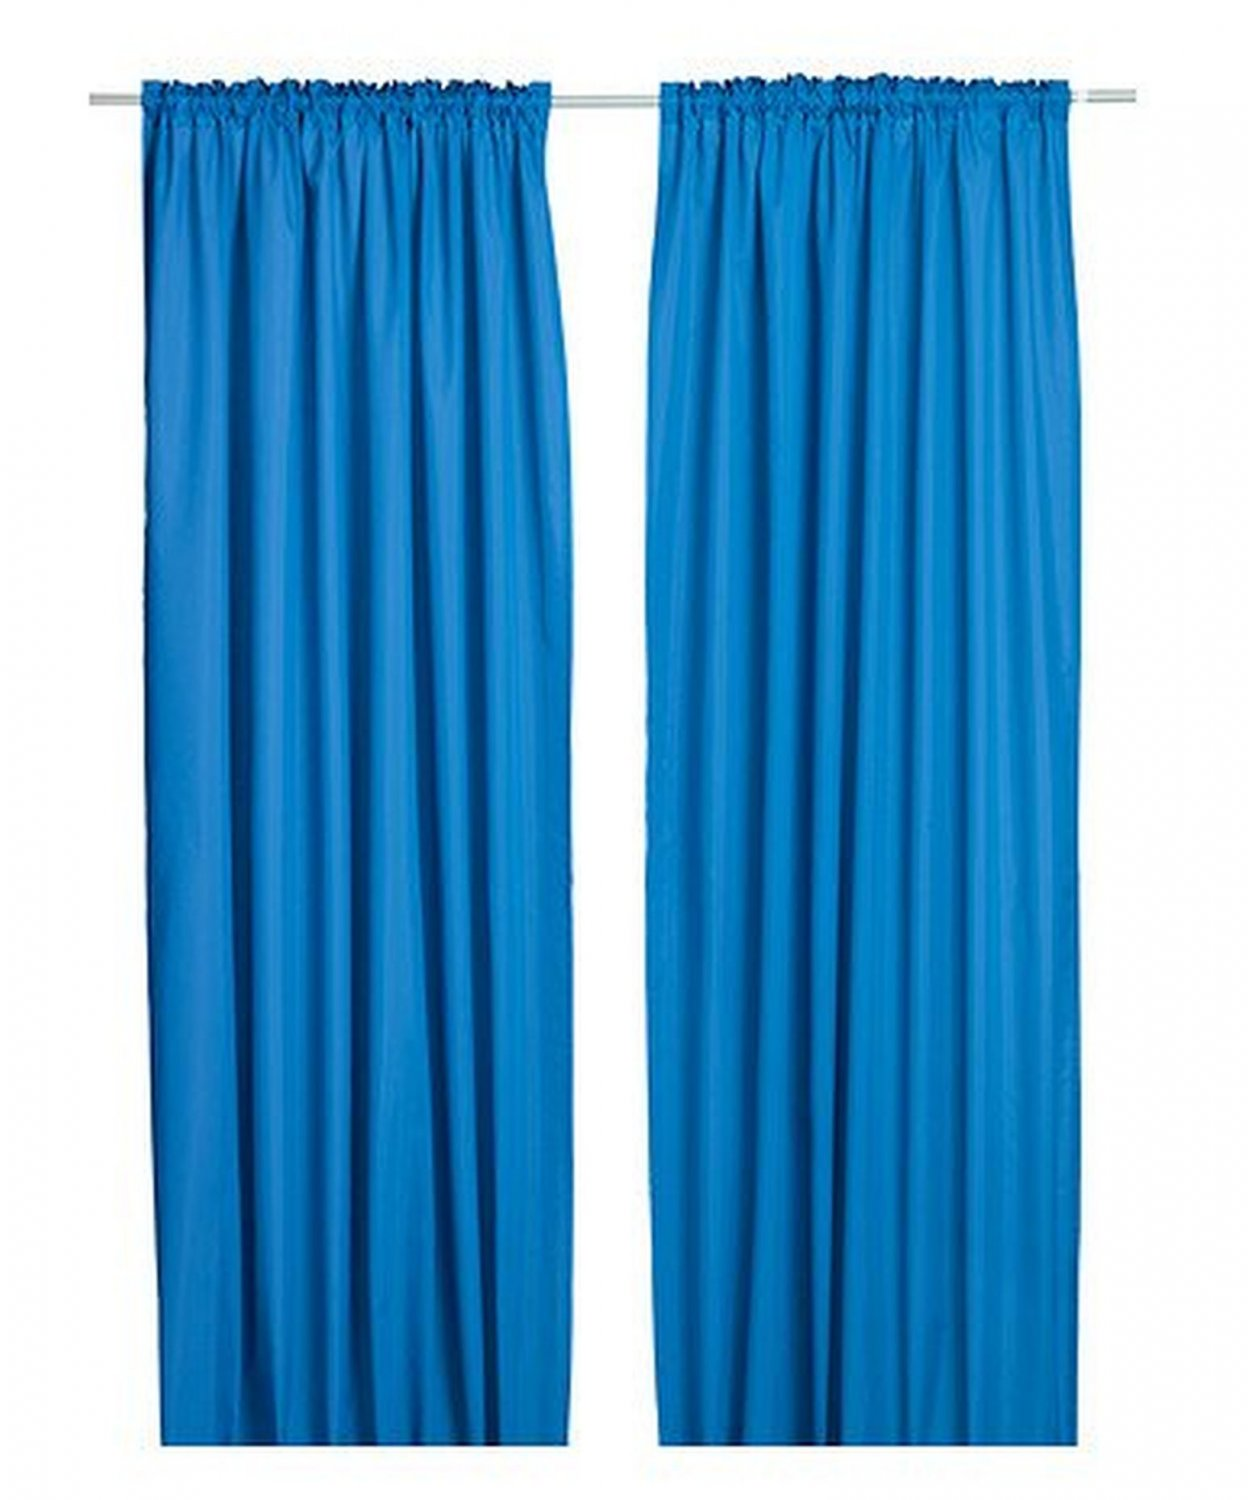 Ikea vivan curtains drapes blue 2 panels for Ikea curtain rods uk